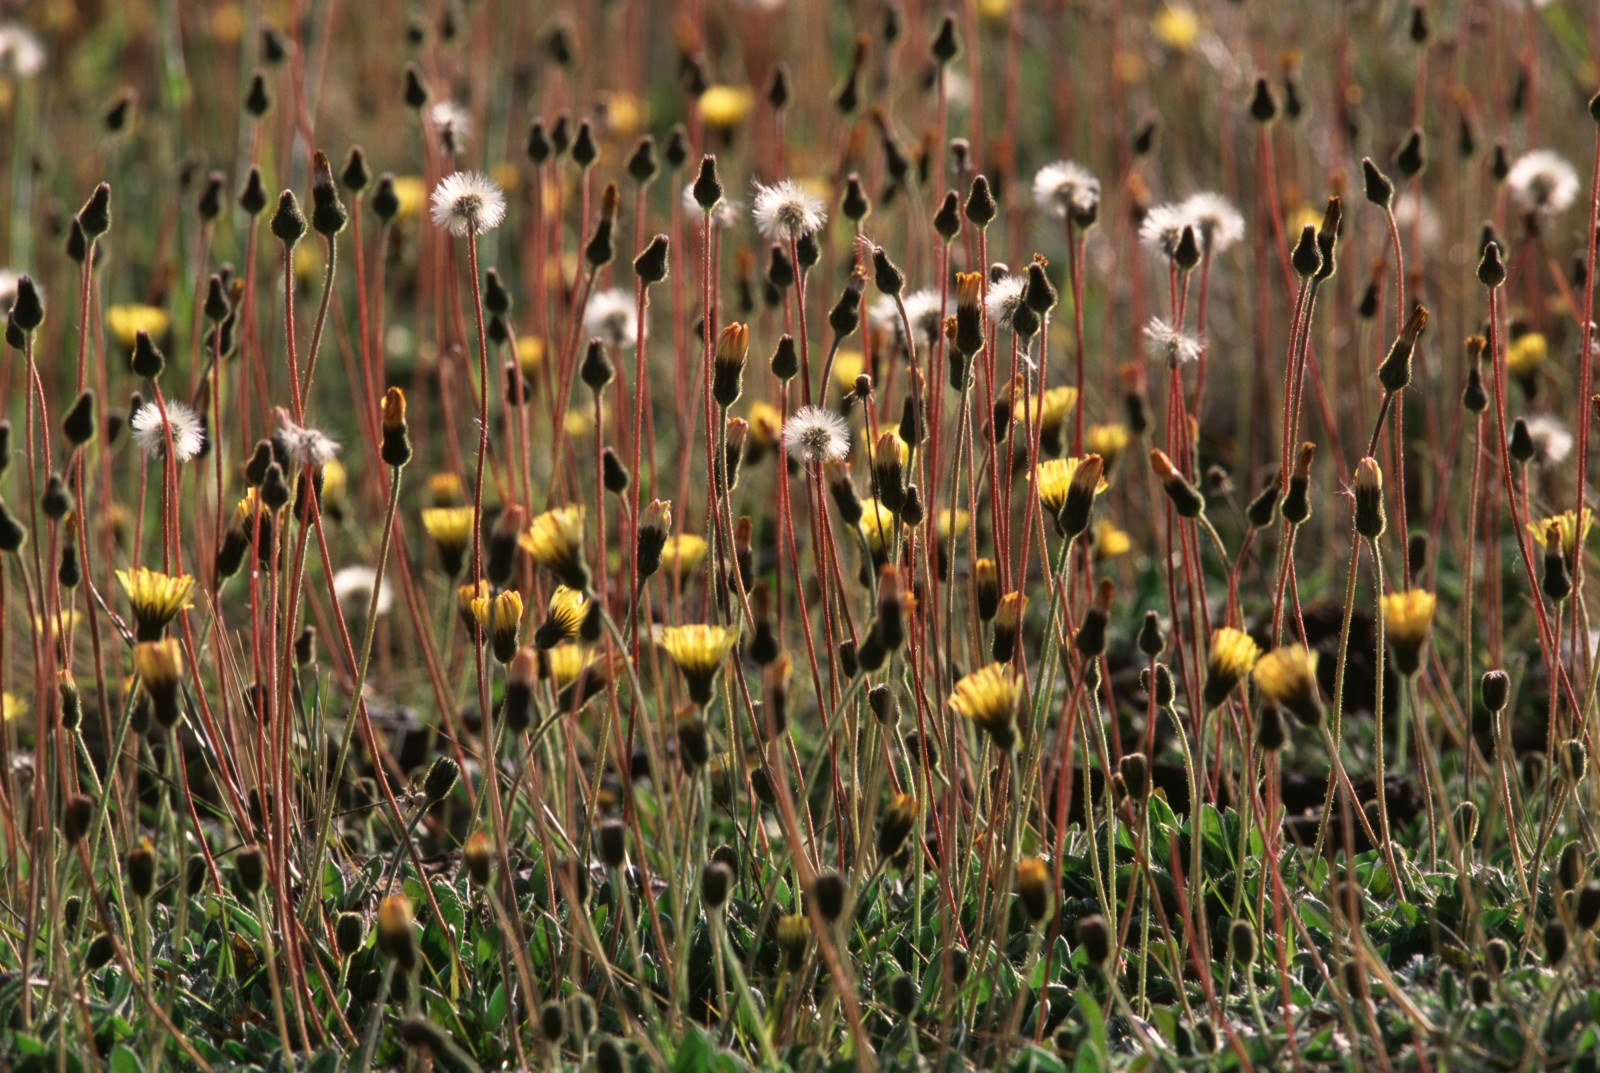 Intriguingly named mouse-ear hawkweed (Hieracium pilosella) is a serious weed that has now become established in places at Rangitaiki. Its floating seeds can travel for miles on the wind and establish new populations wherever they reach bare ground—yet another question mark over the future of the fragile frost flats.